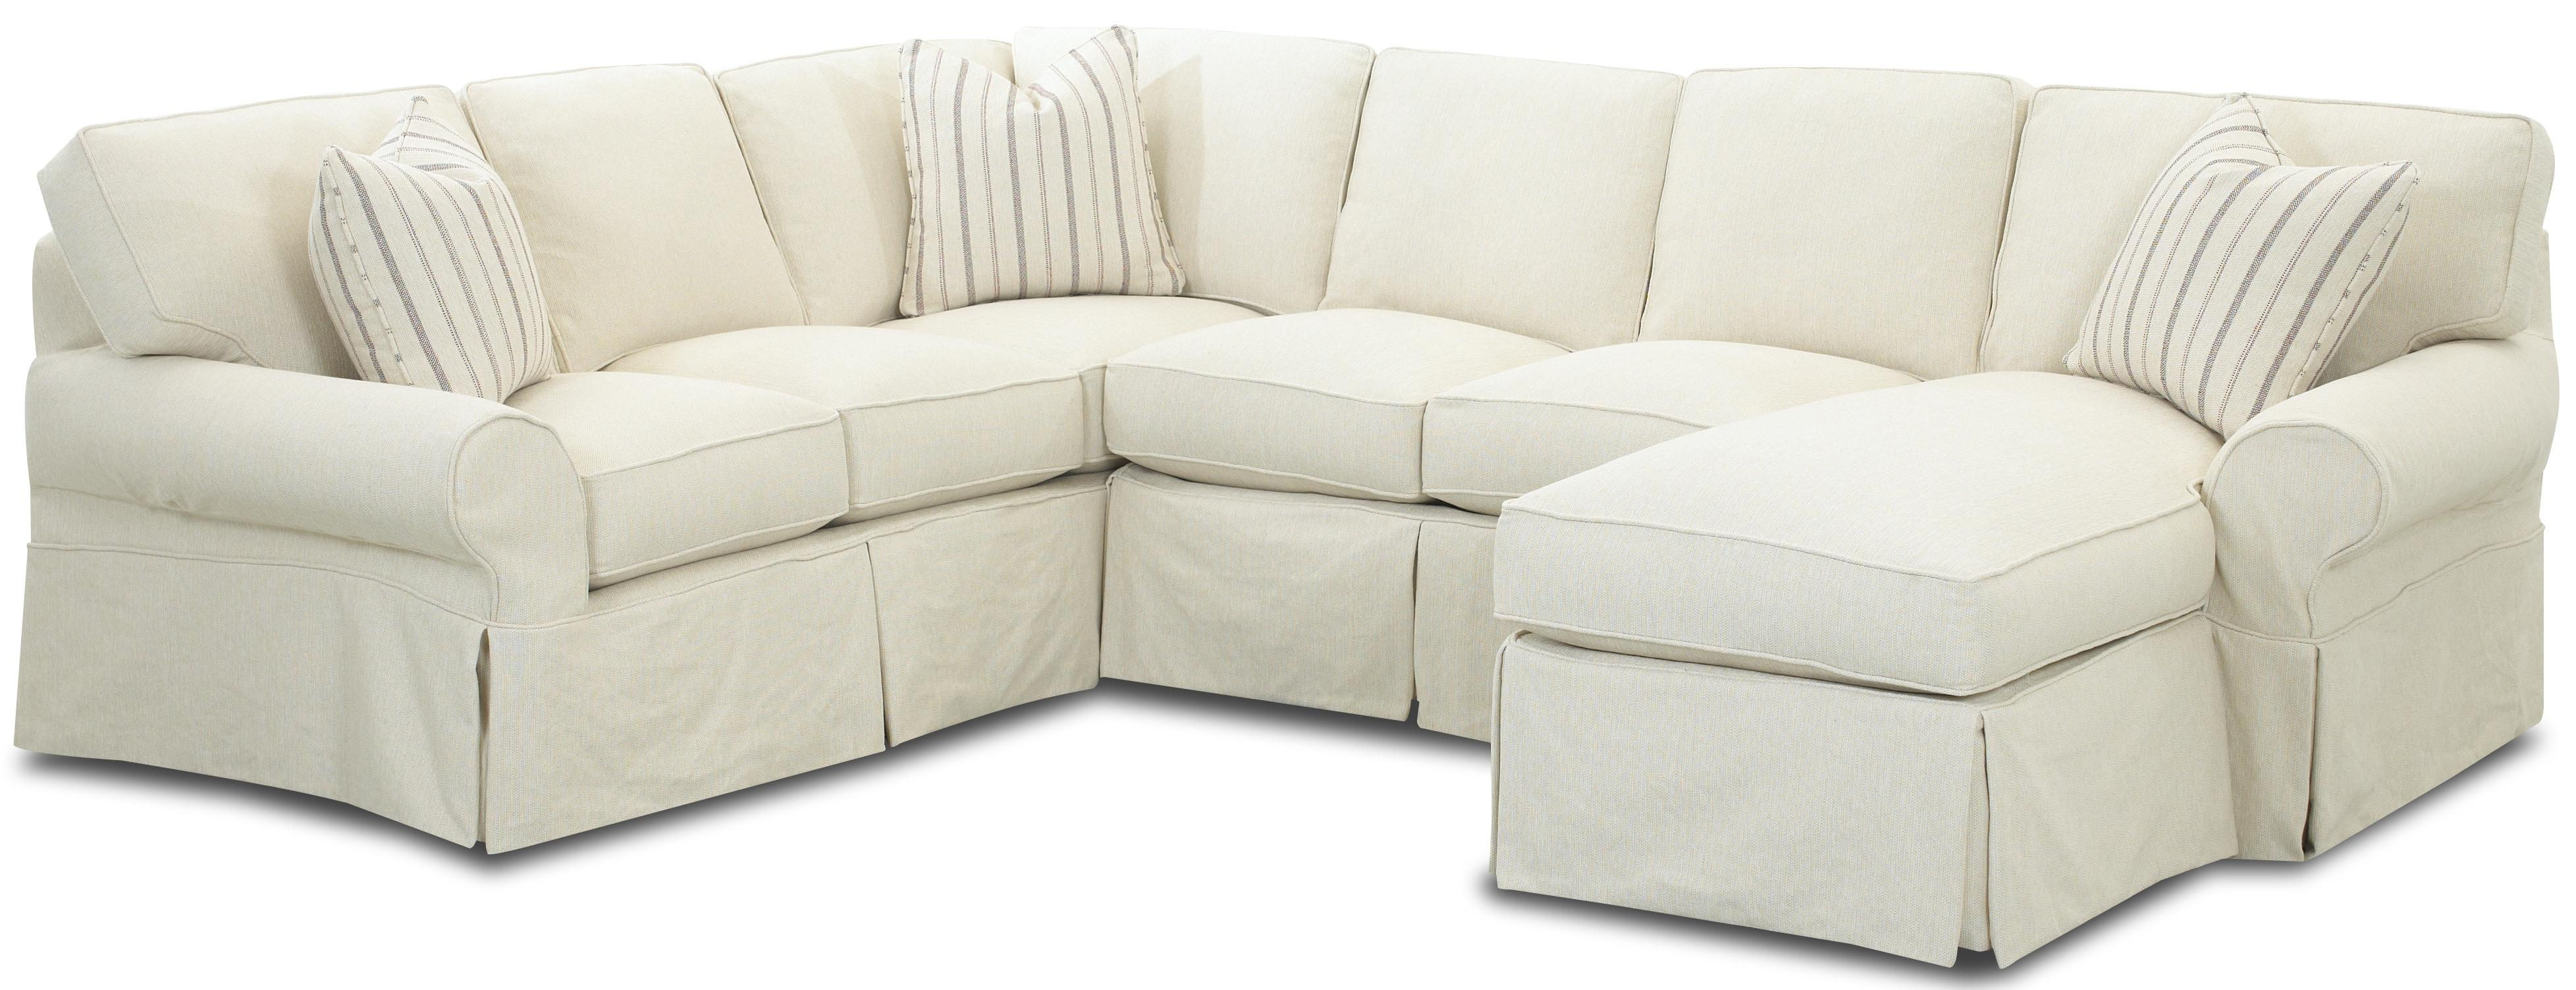 3pc slipcovers set couch sofa loveseat chair covers sofas by design navan ab aziz maker